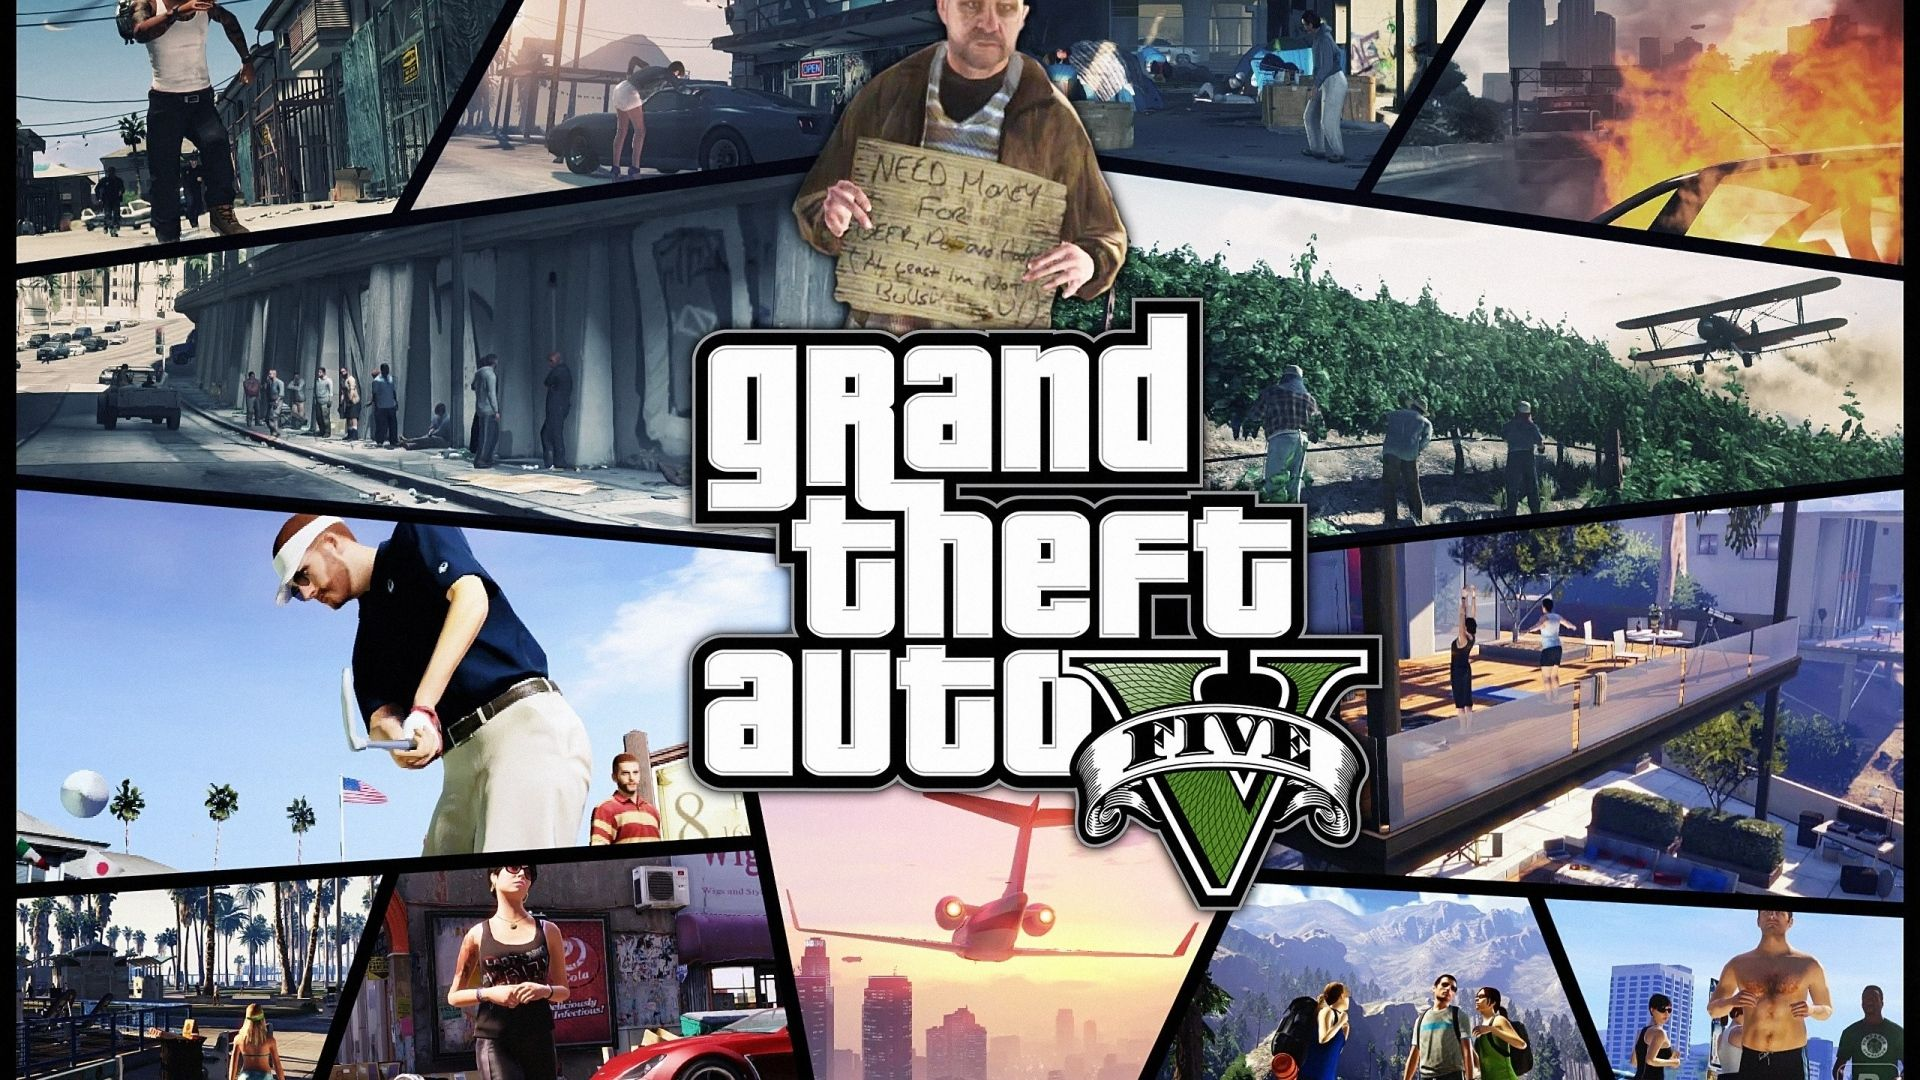 Download Wallpaper 1920x1080 Gta Grand Theft Auto 5 Photos Shots Game Full Hd 1080p Hd Background Grand Theft Auto San Andreas Game Gaming Wallpapers